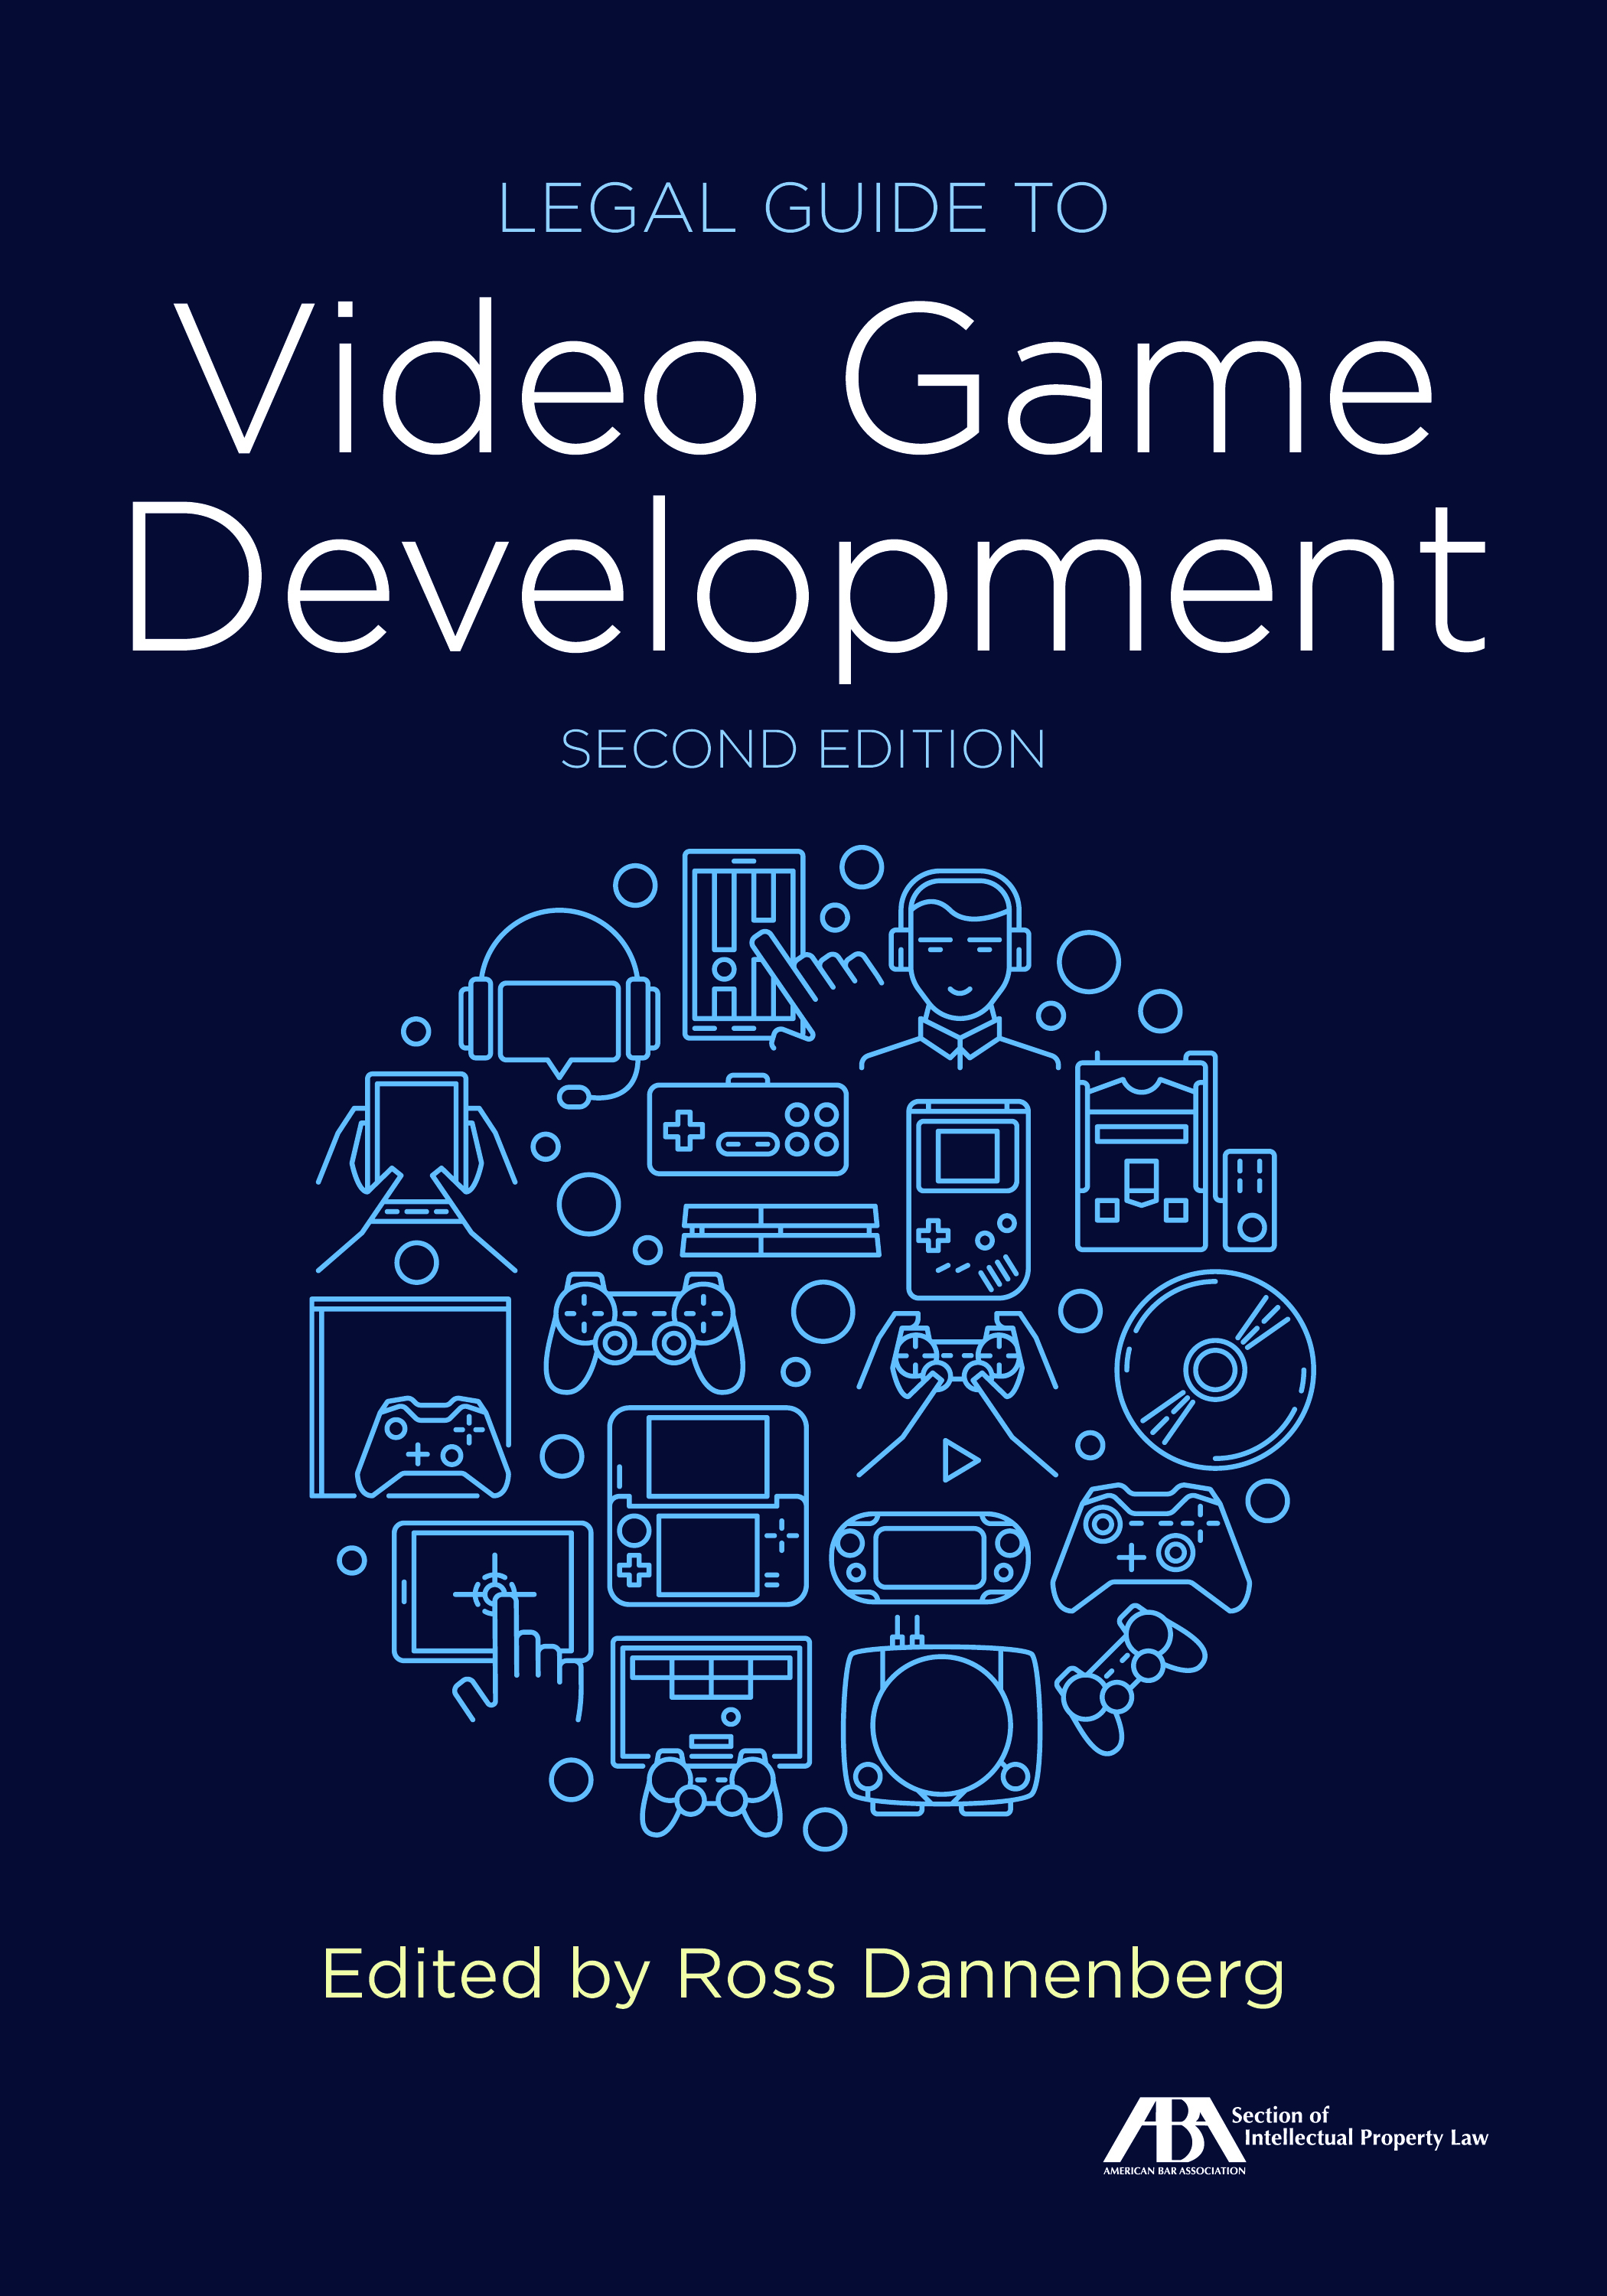 Legal Guide to Video Game Development, Second Edition